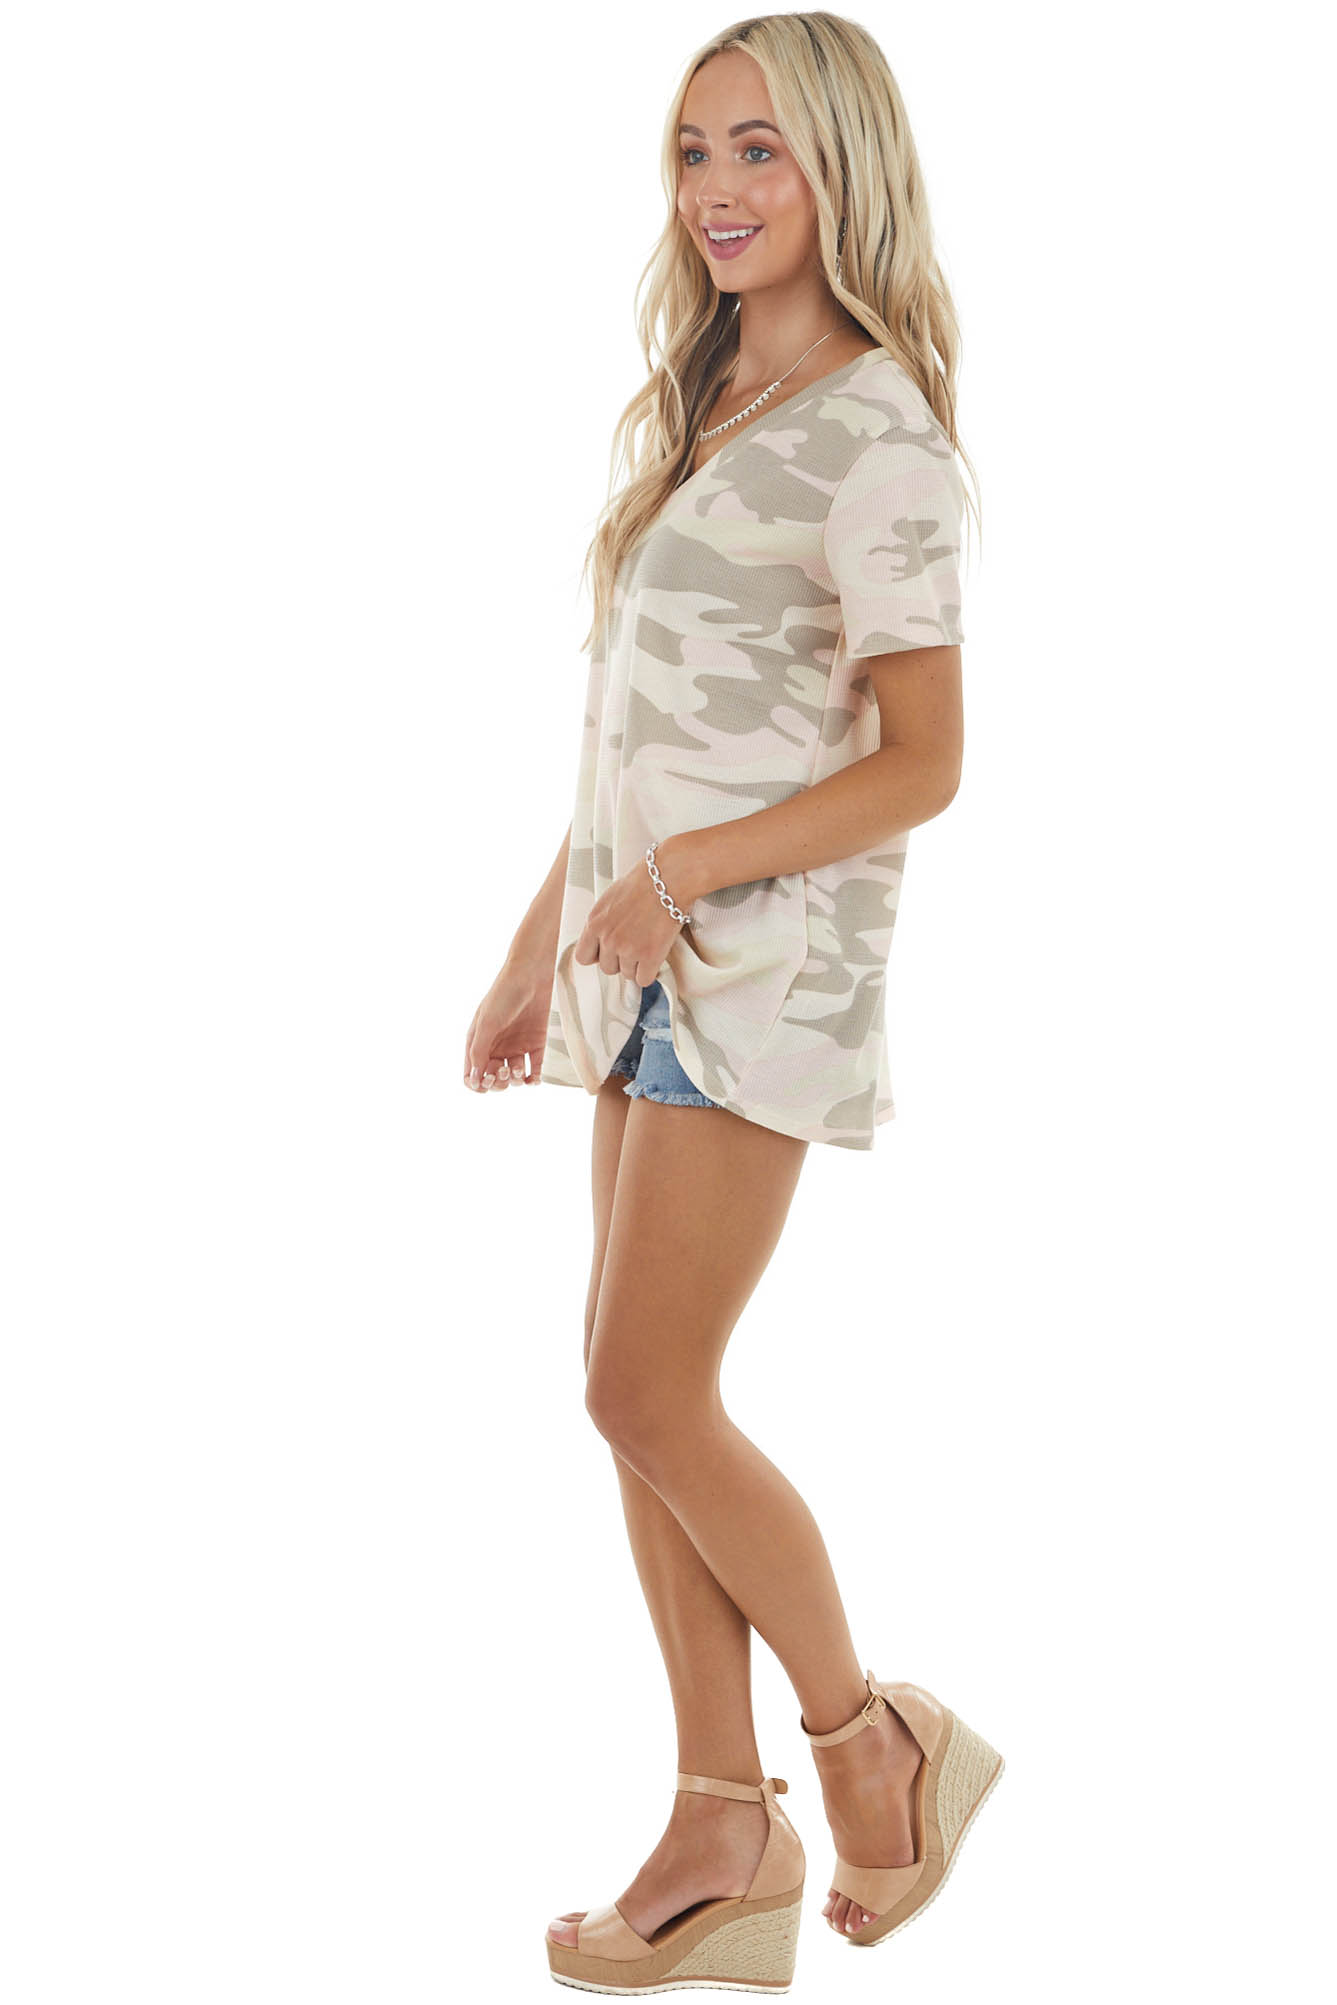 Desert Sand Camo Print Knit V Neck Top with Short Sleeves